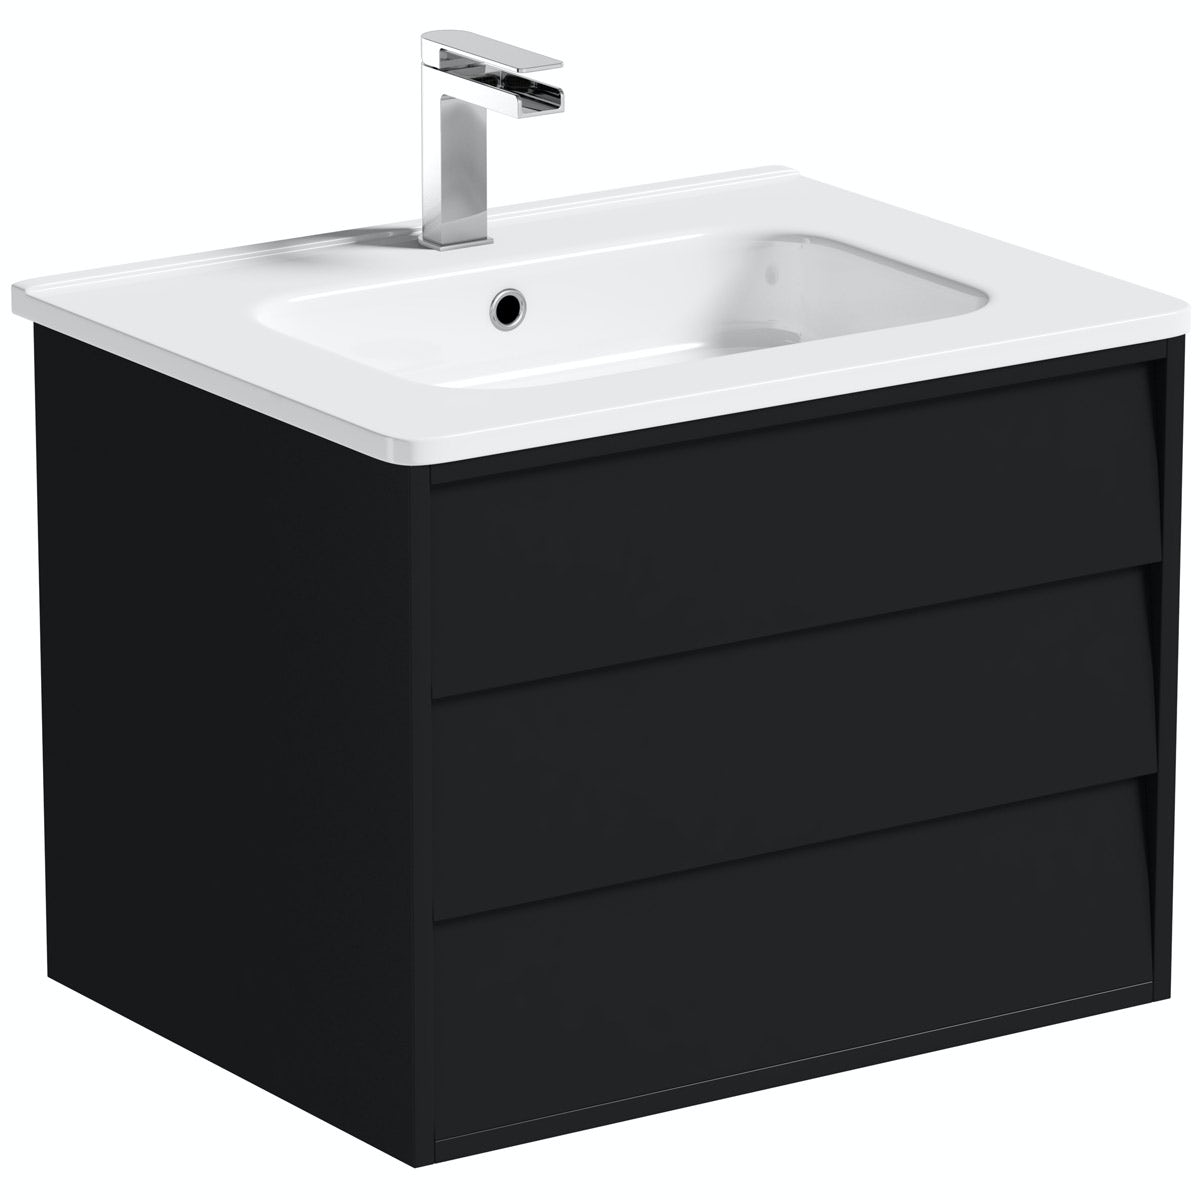 Mode Cooper anthracite vanity unit and basin 600mm